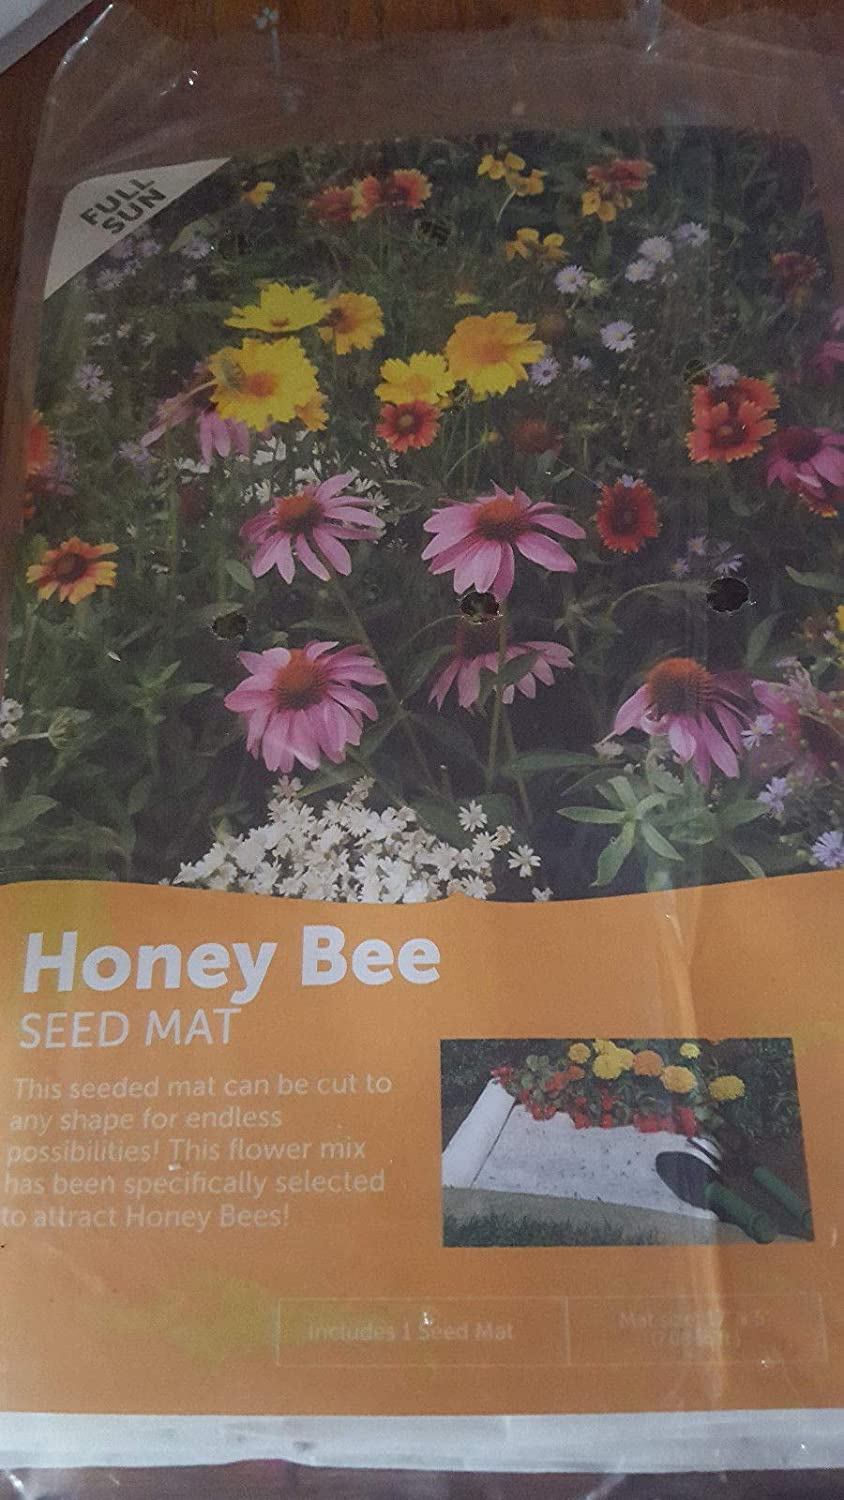 Honey bee Seed mat HATCHMATIC Germination Seeds